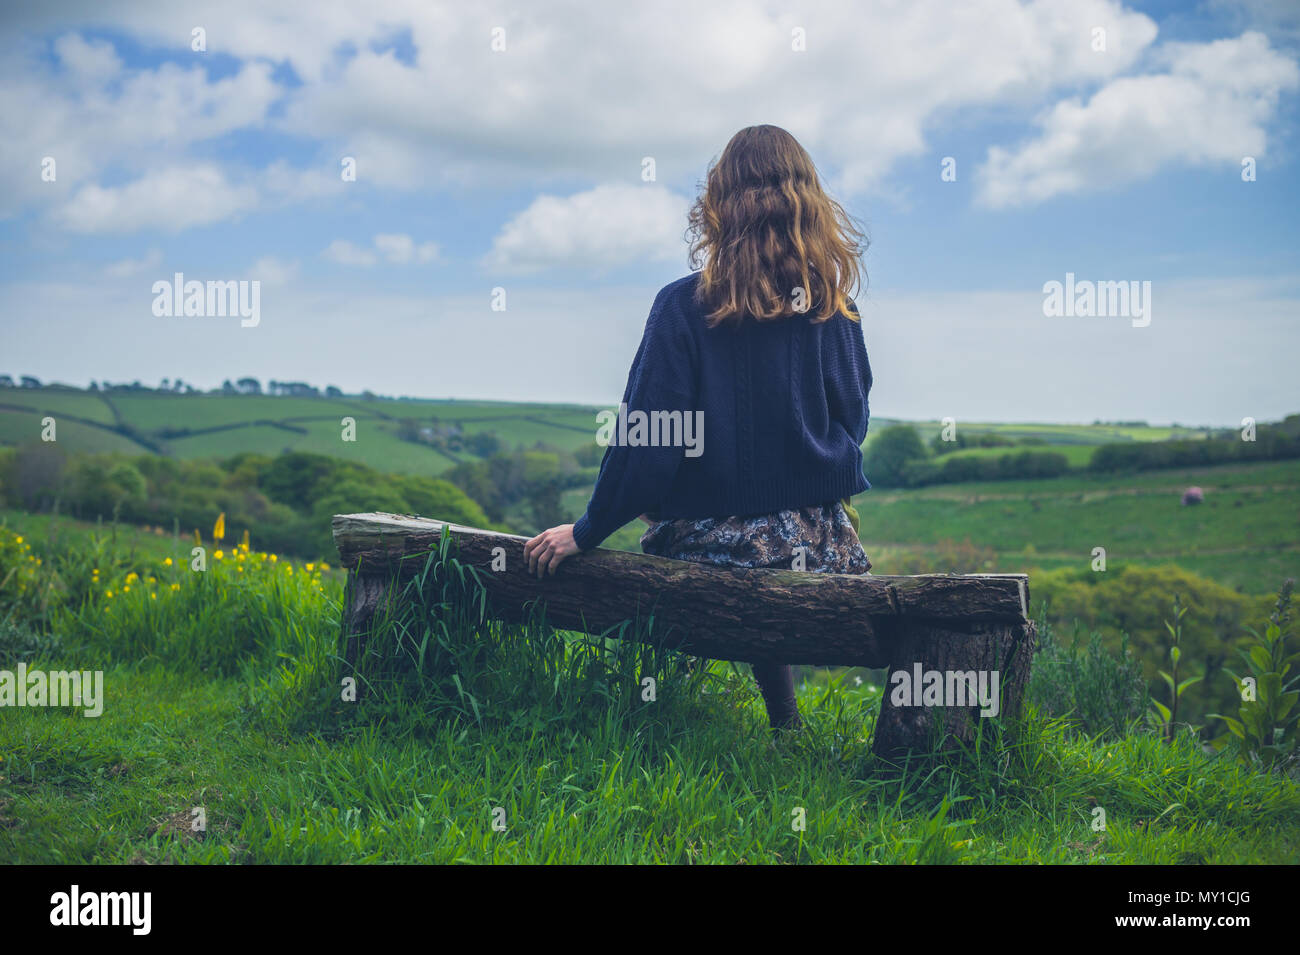 A young woman is sitting on a bench in the countryside - Stock Image